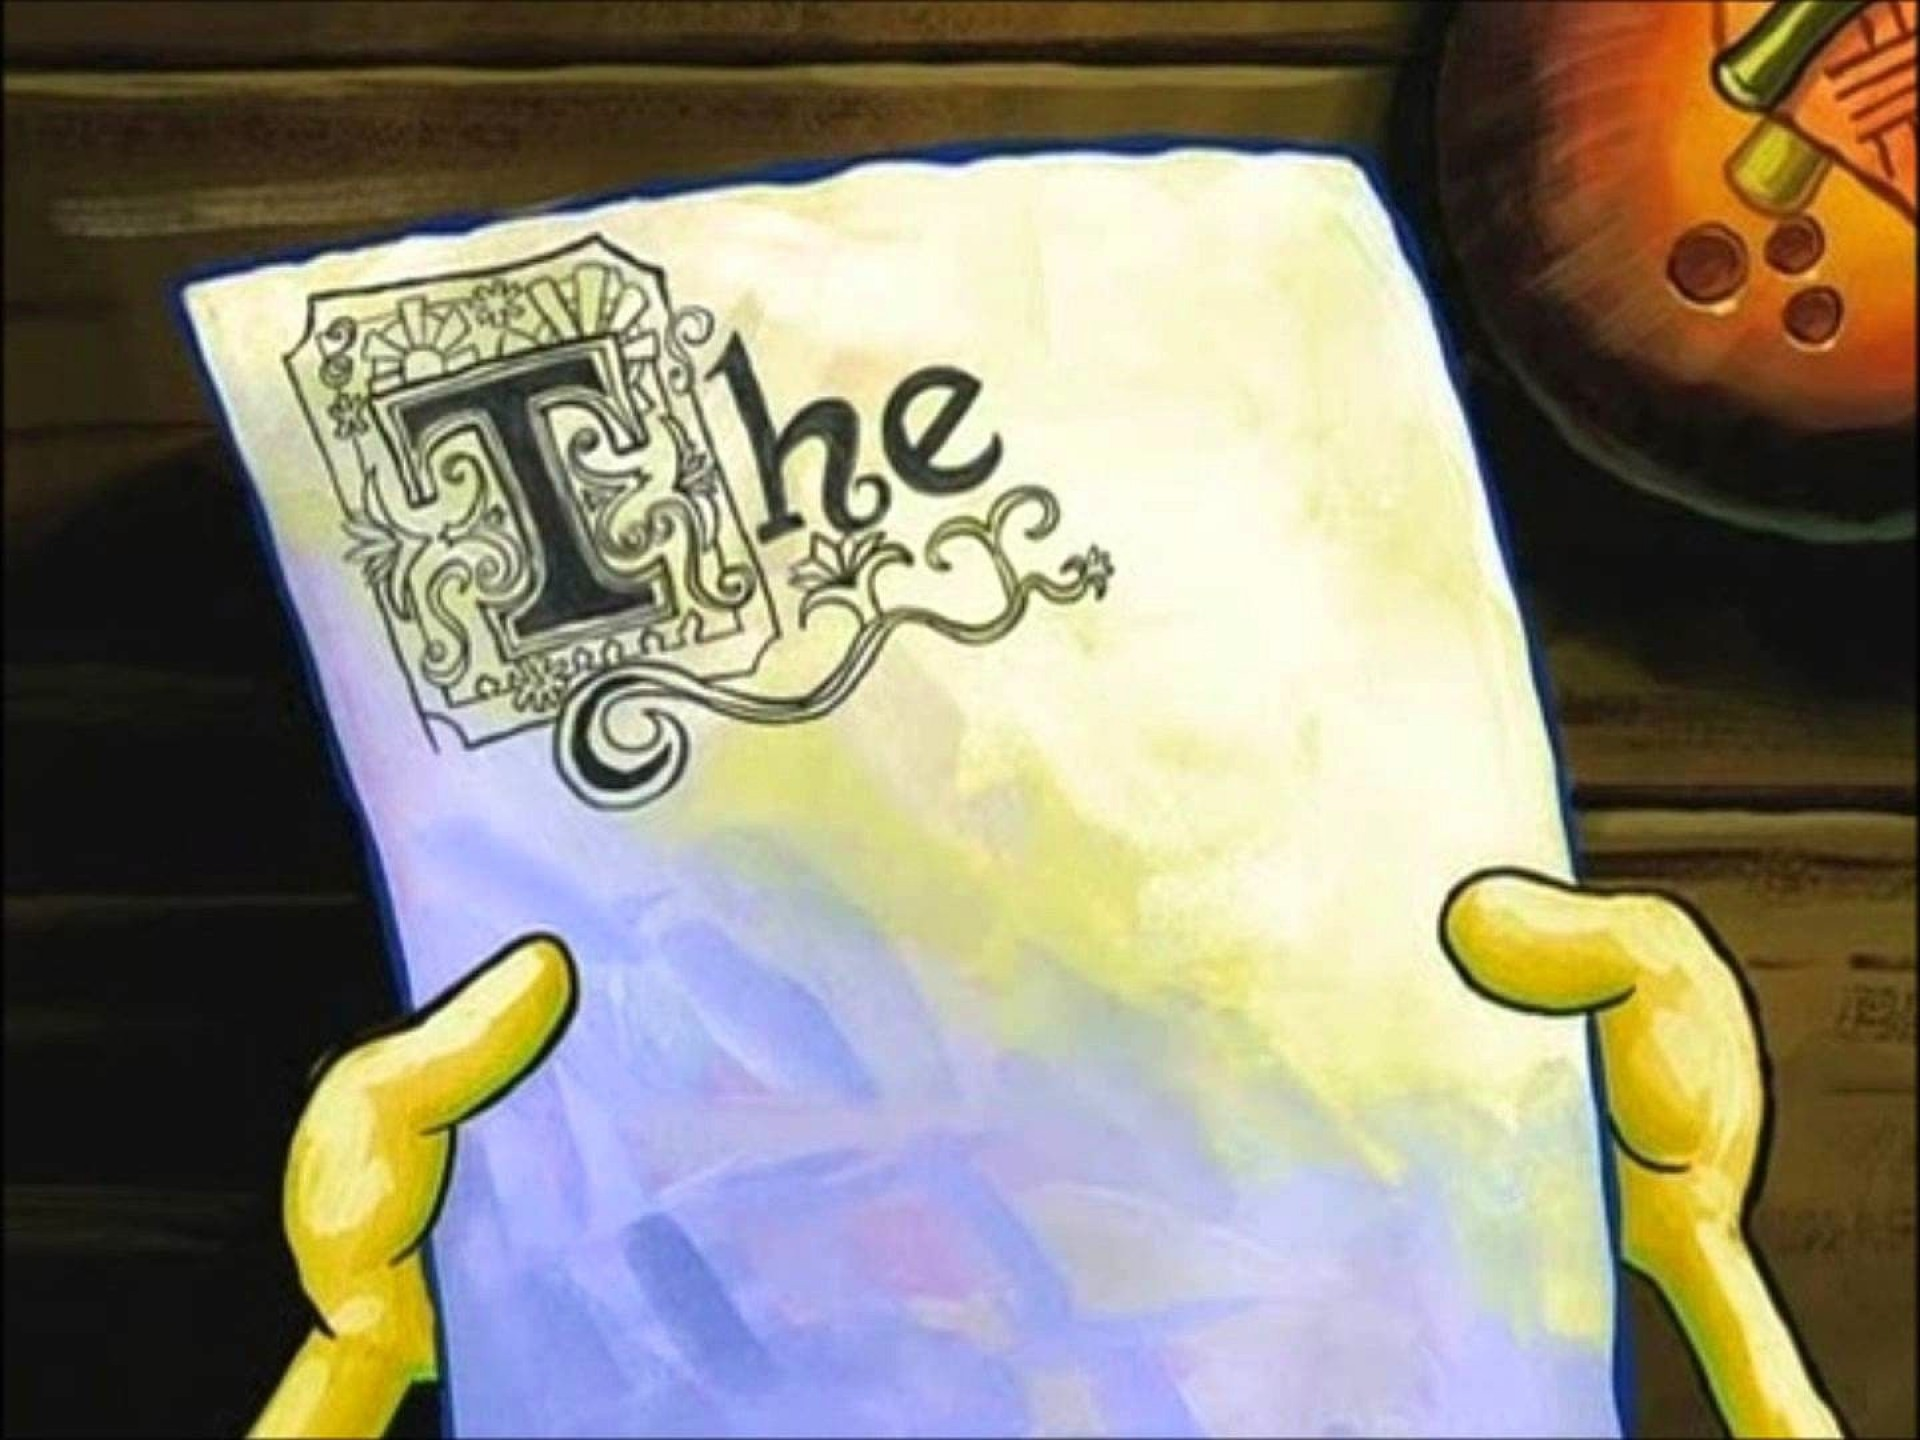 008 Essay Example Surprising Spongebob Pencil Quote Full Episode Writing Scene 1920